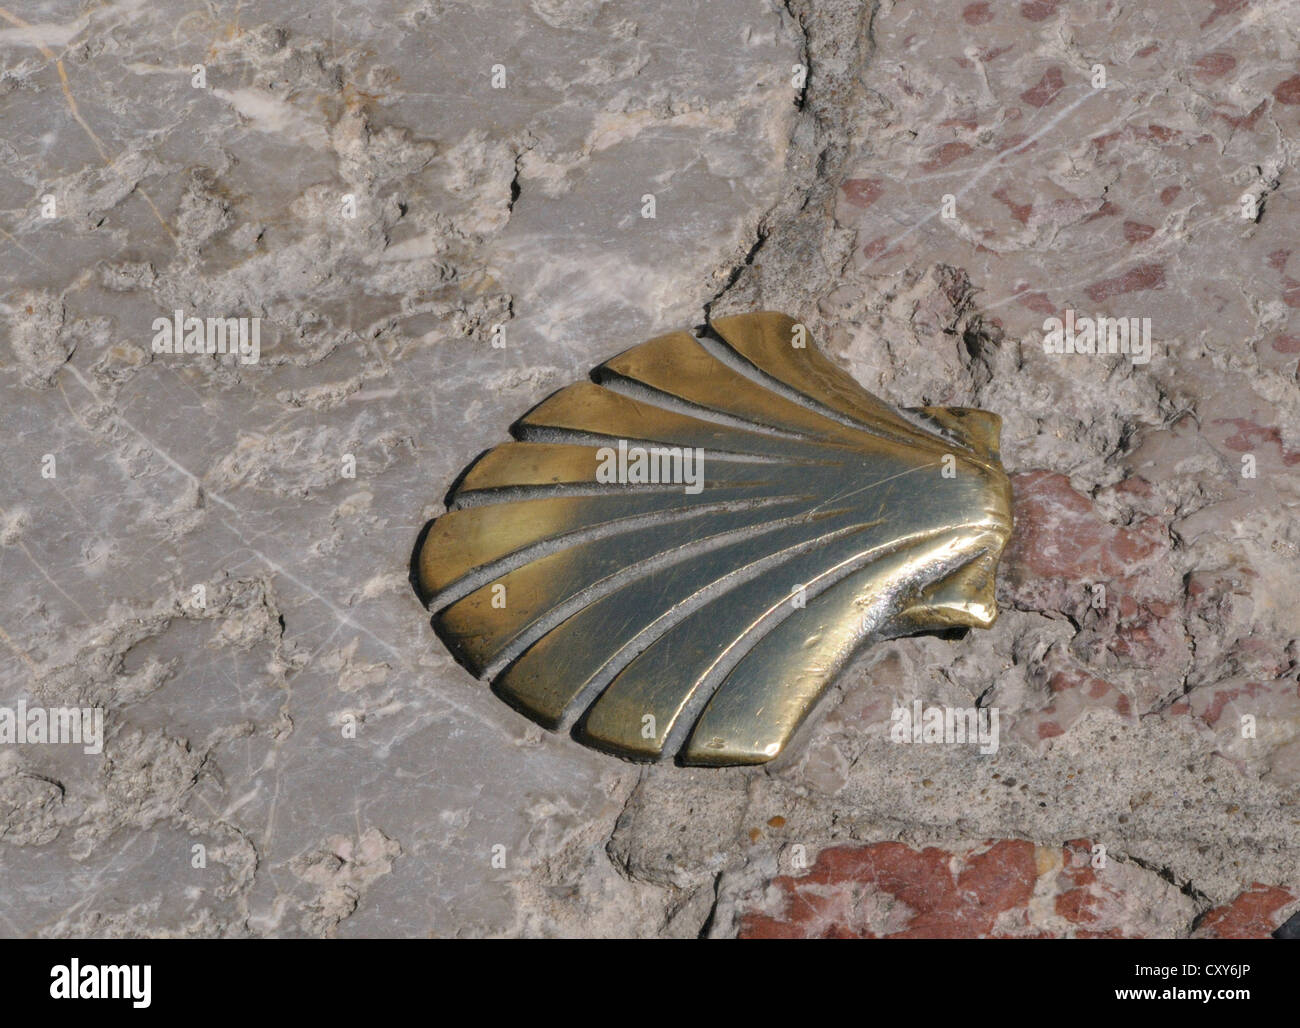 Metal Scallop Shell Symbol Set In The Pavement Marking The Pilgrims